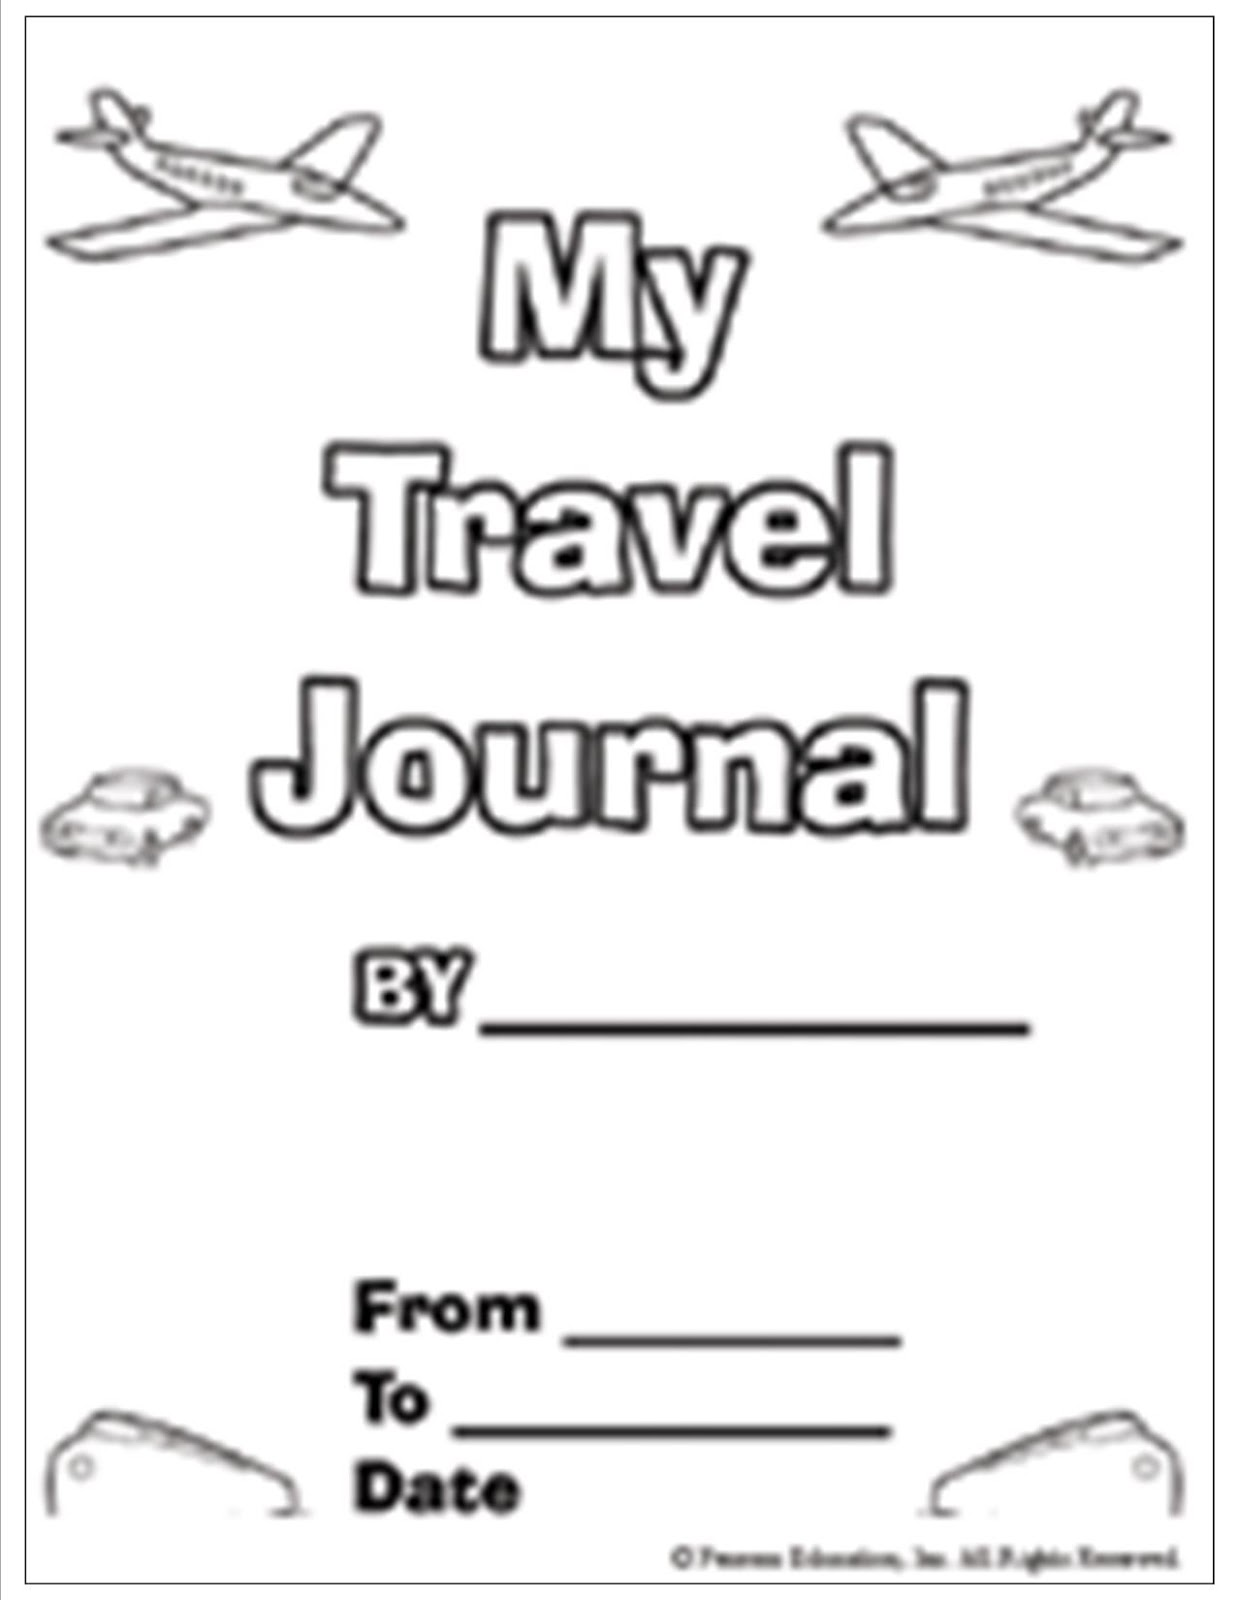 How to Be the Best Nanny : Making Vacation Journals with Kids